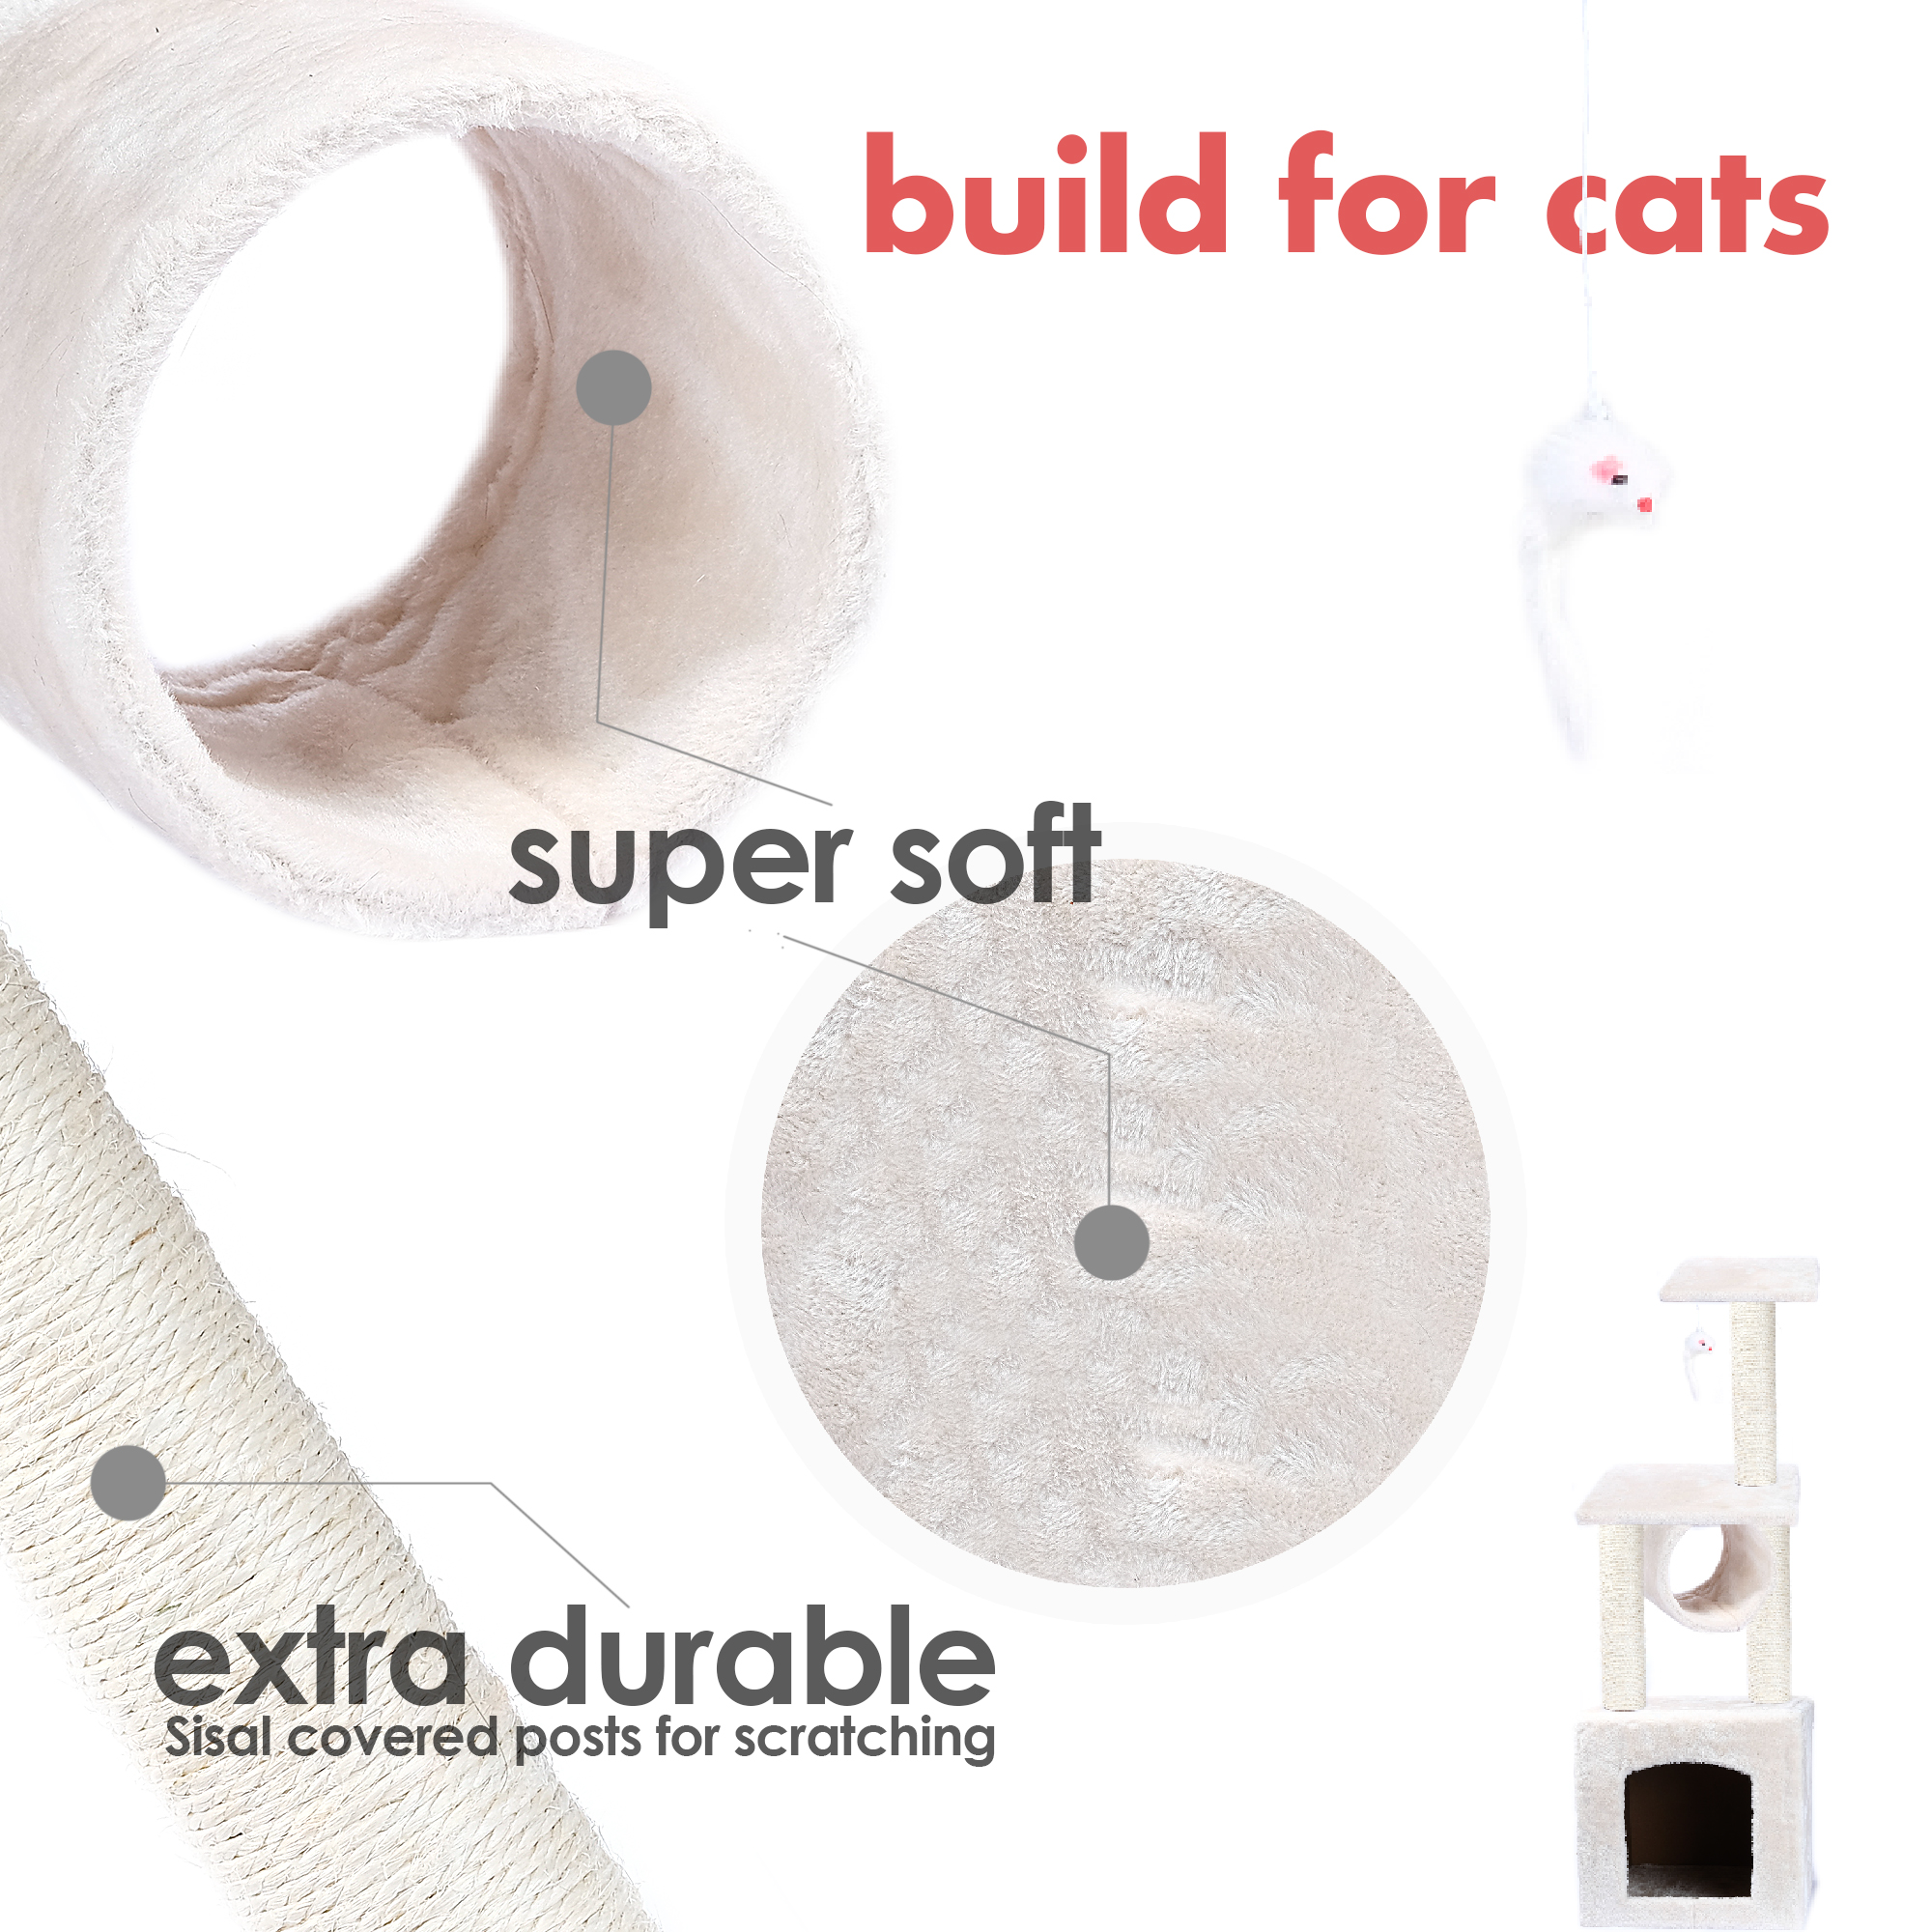 build for cats 2.jpg